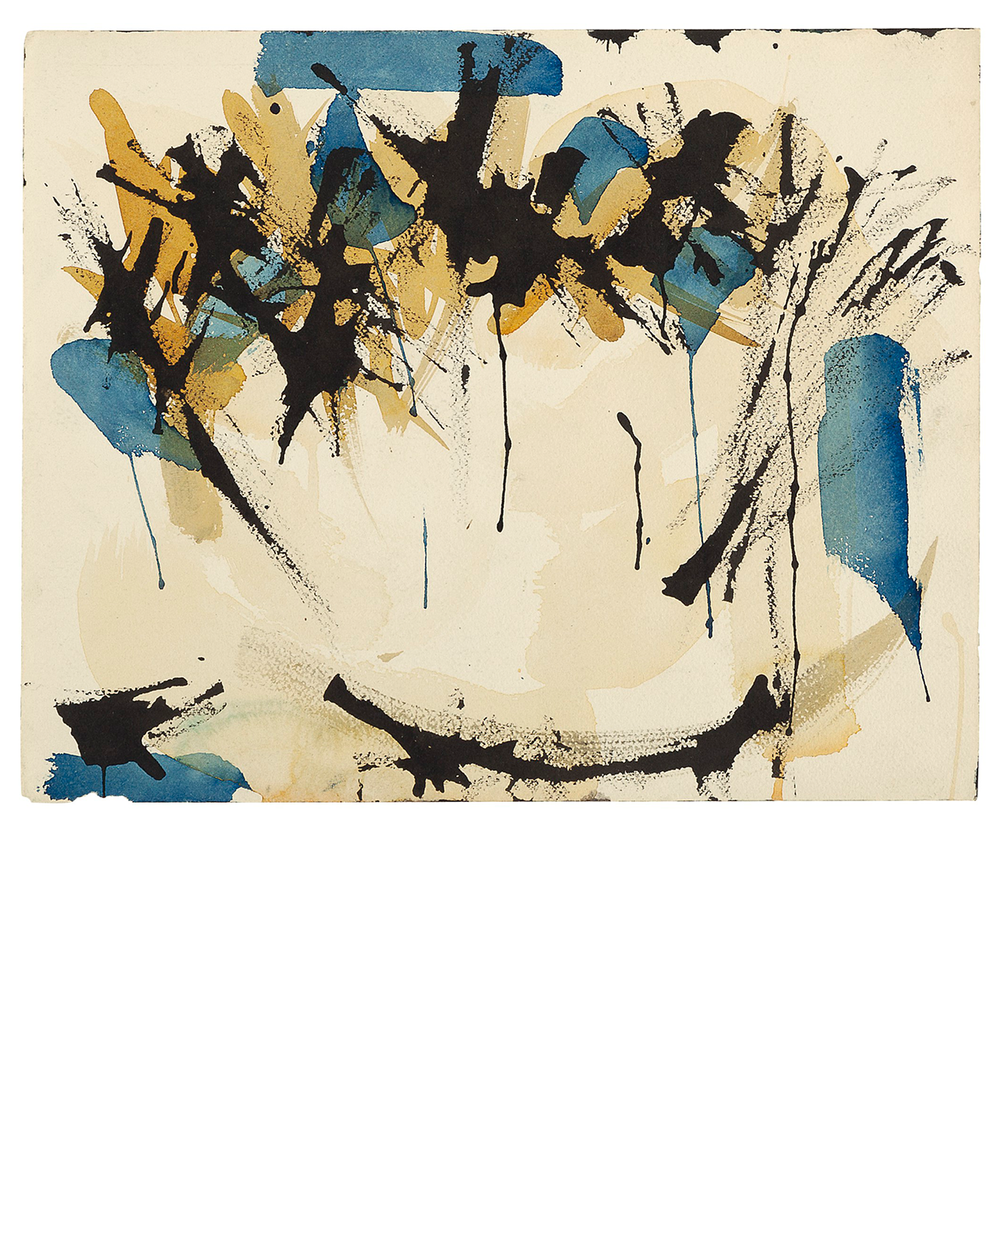 Untitled (Blue, Black and Ochre), circa 1950